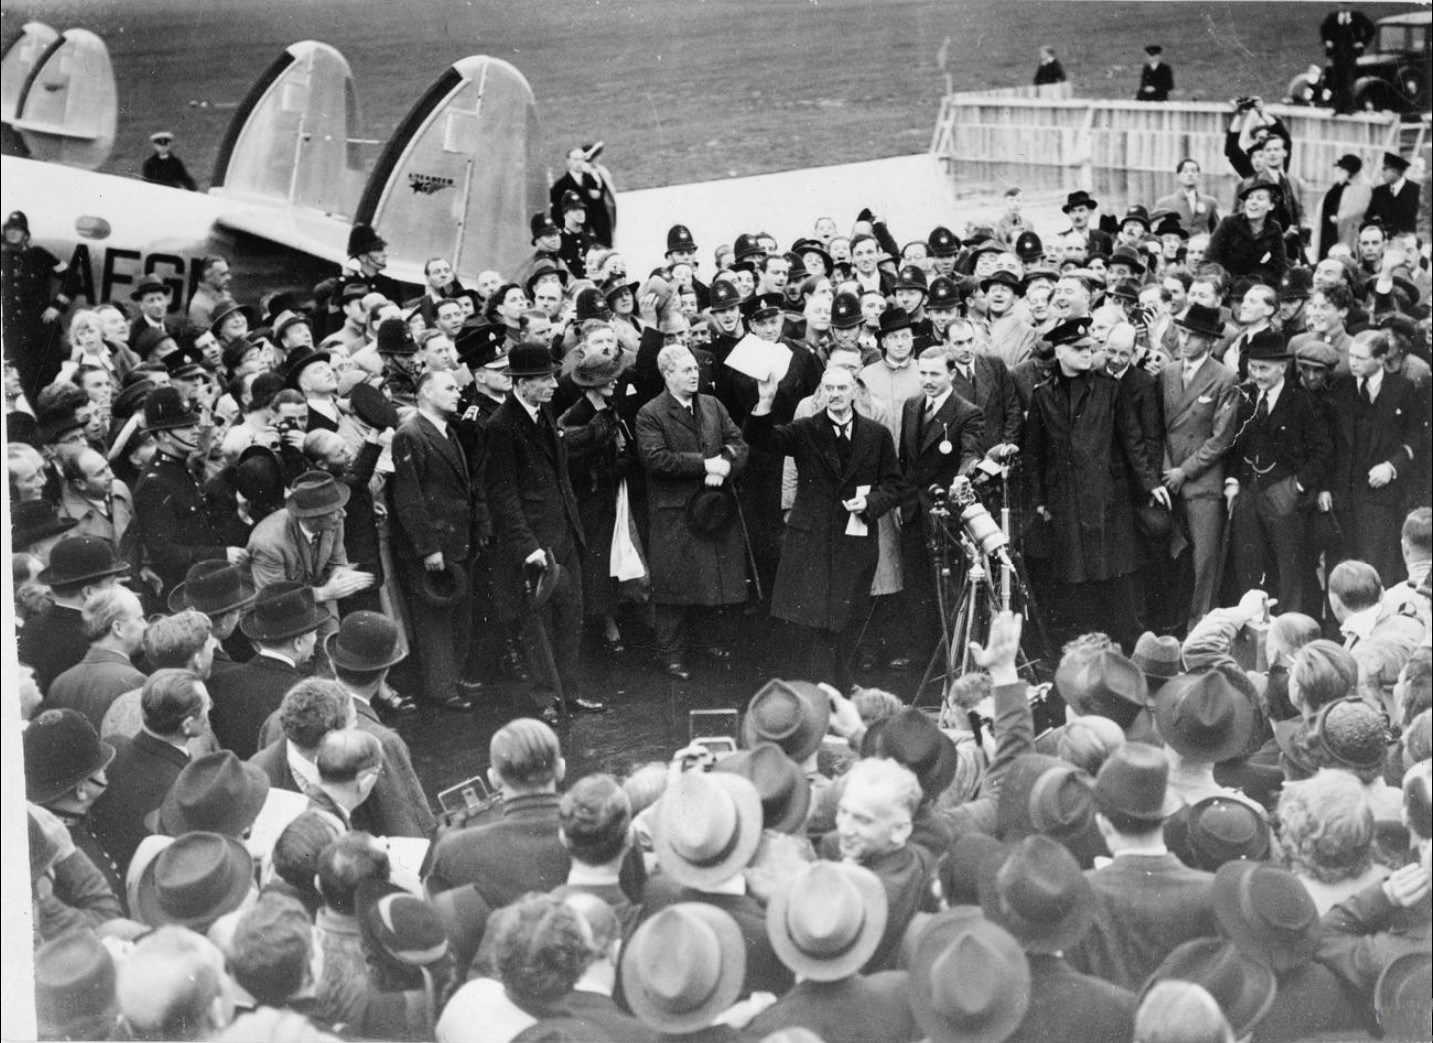 Prime Minister Neville Chamberlain back in Britain after his shuttle diplomacy secured